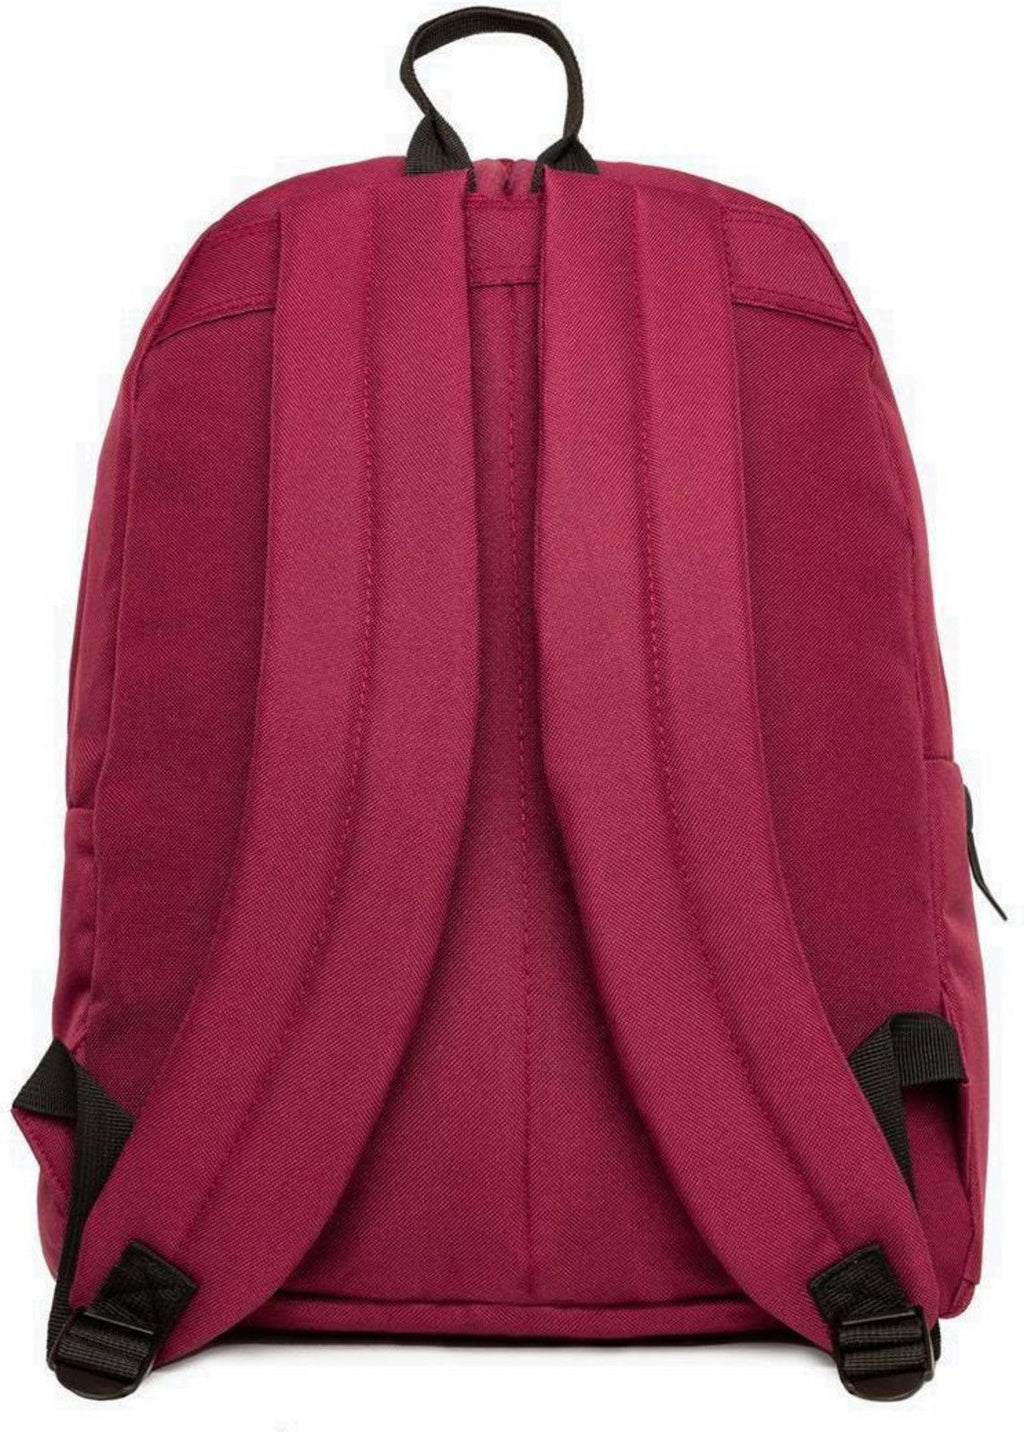 Hype Core Backpack Bag Burgundy